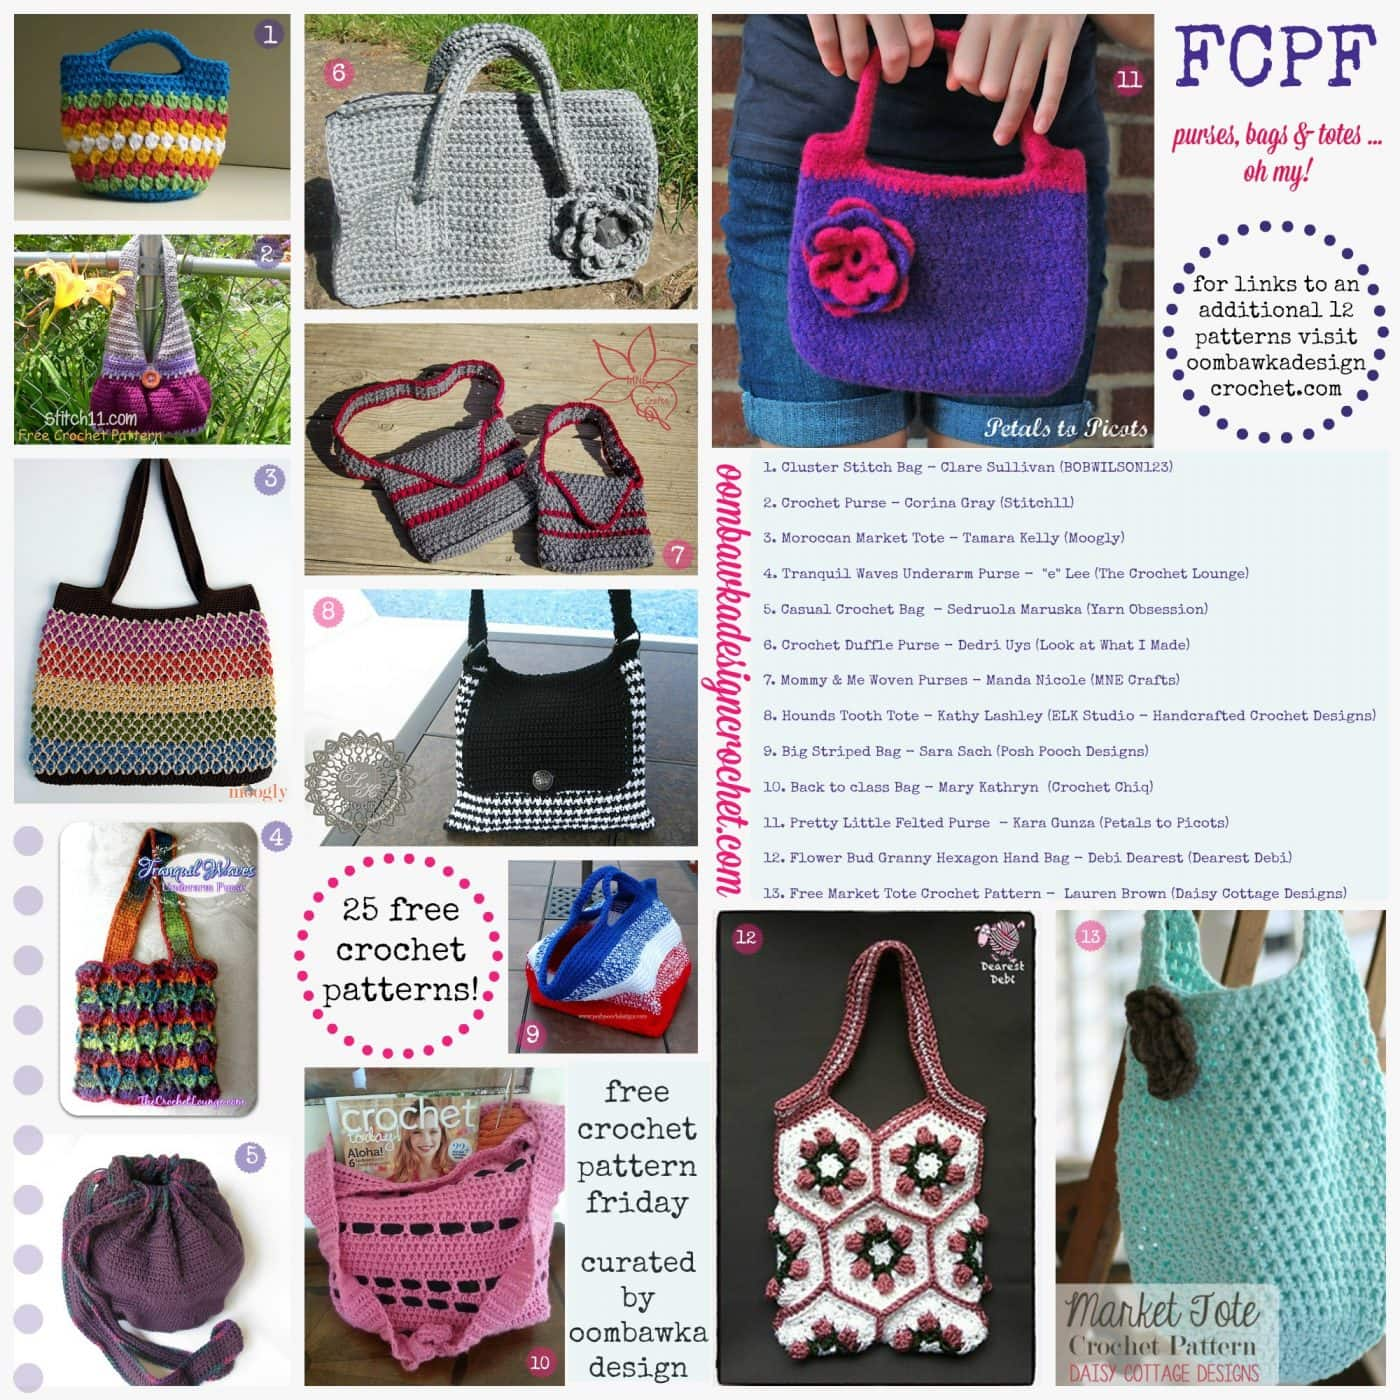 Purses, Bags and Totes - Oh My! Oombawka Design Crochet